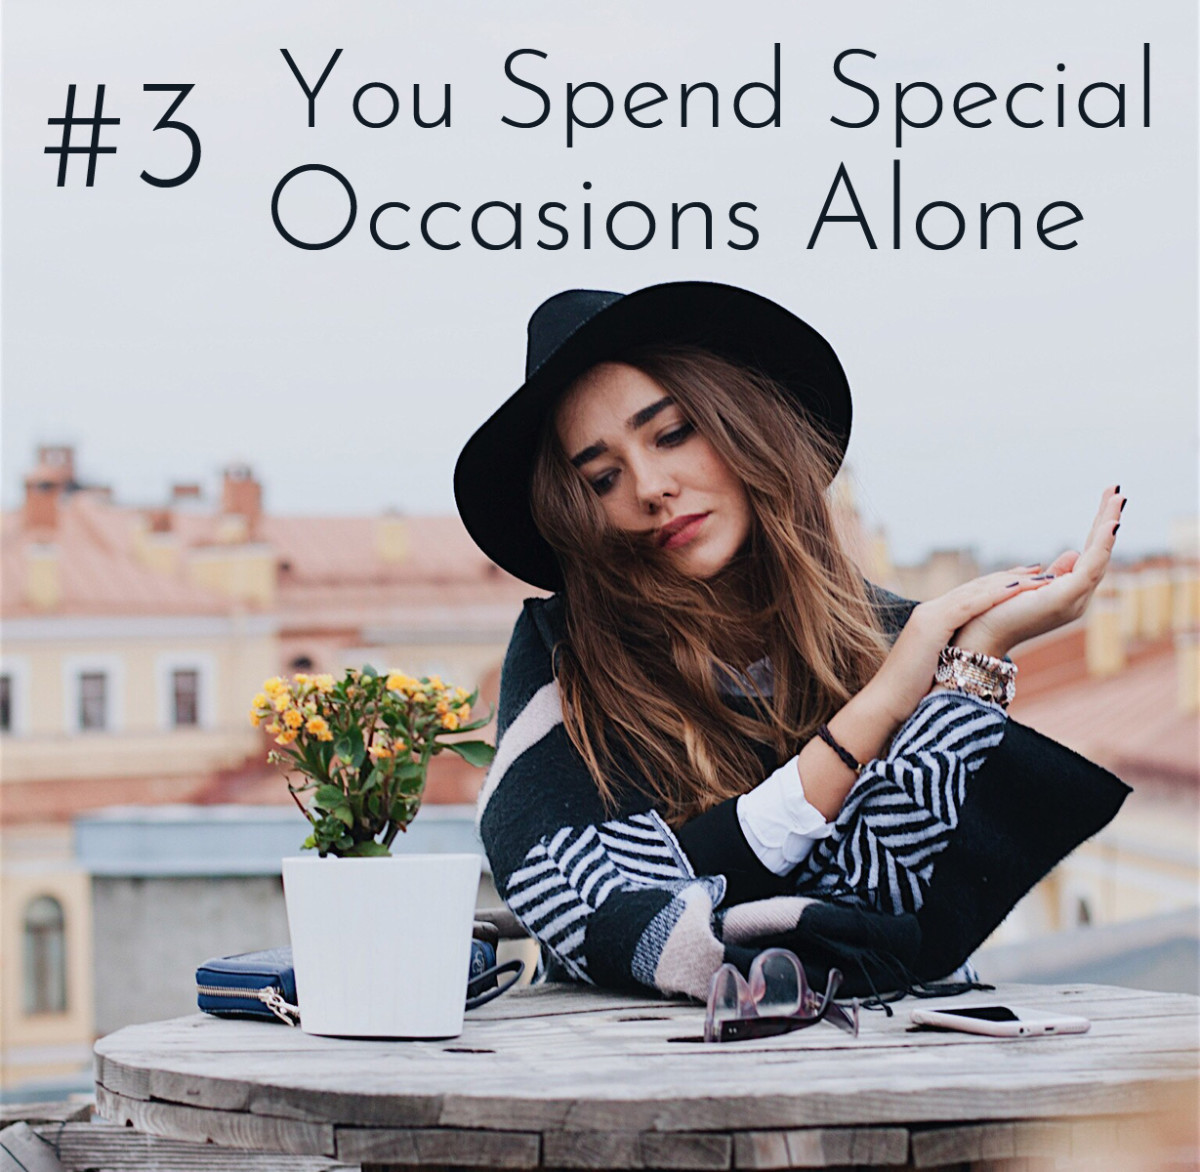 Being the other woman means spending a lot of your time alone.